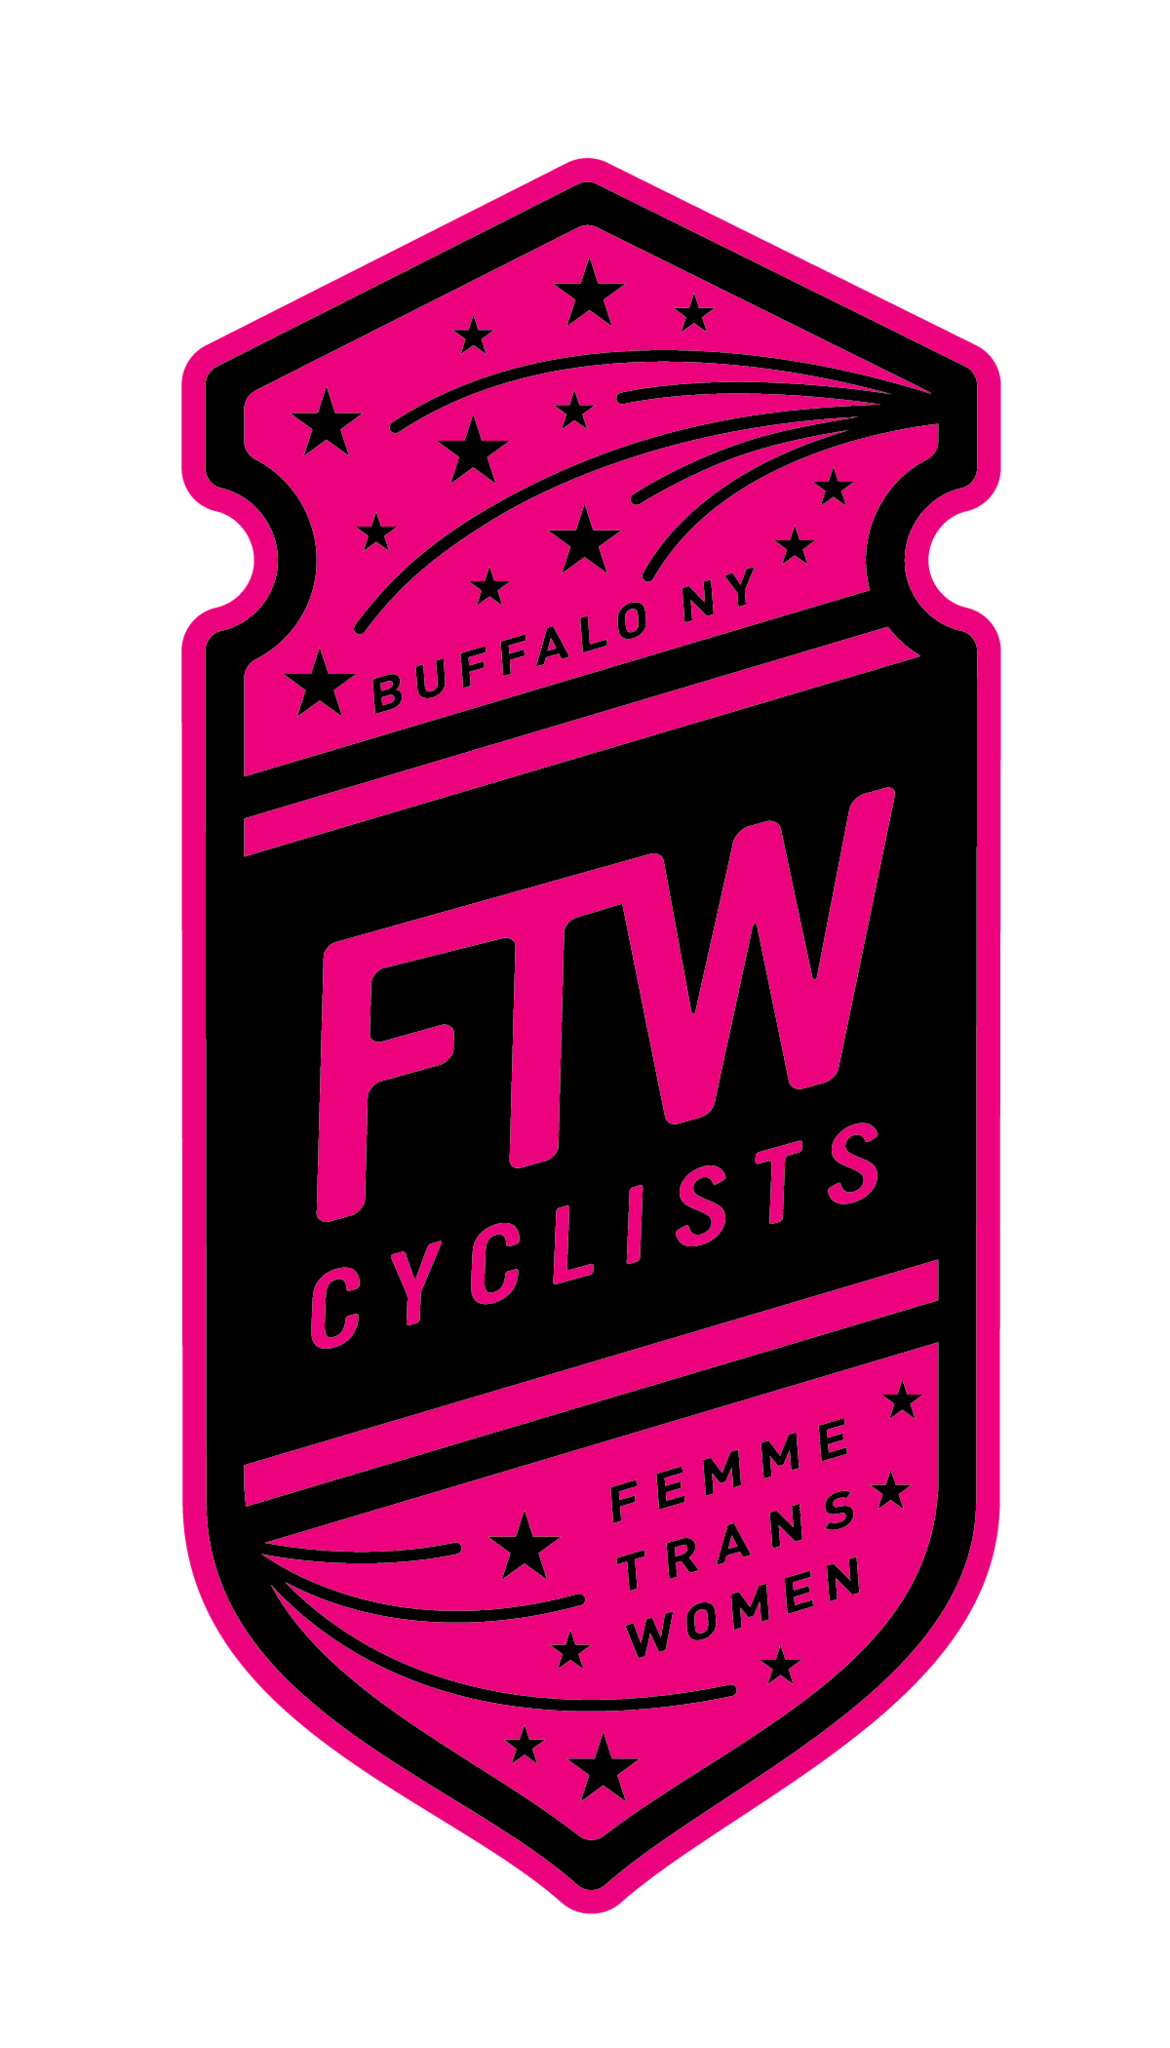 ftw cyclists buffalo